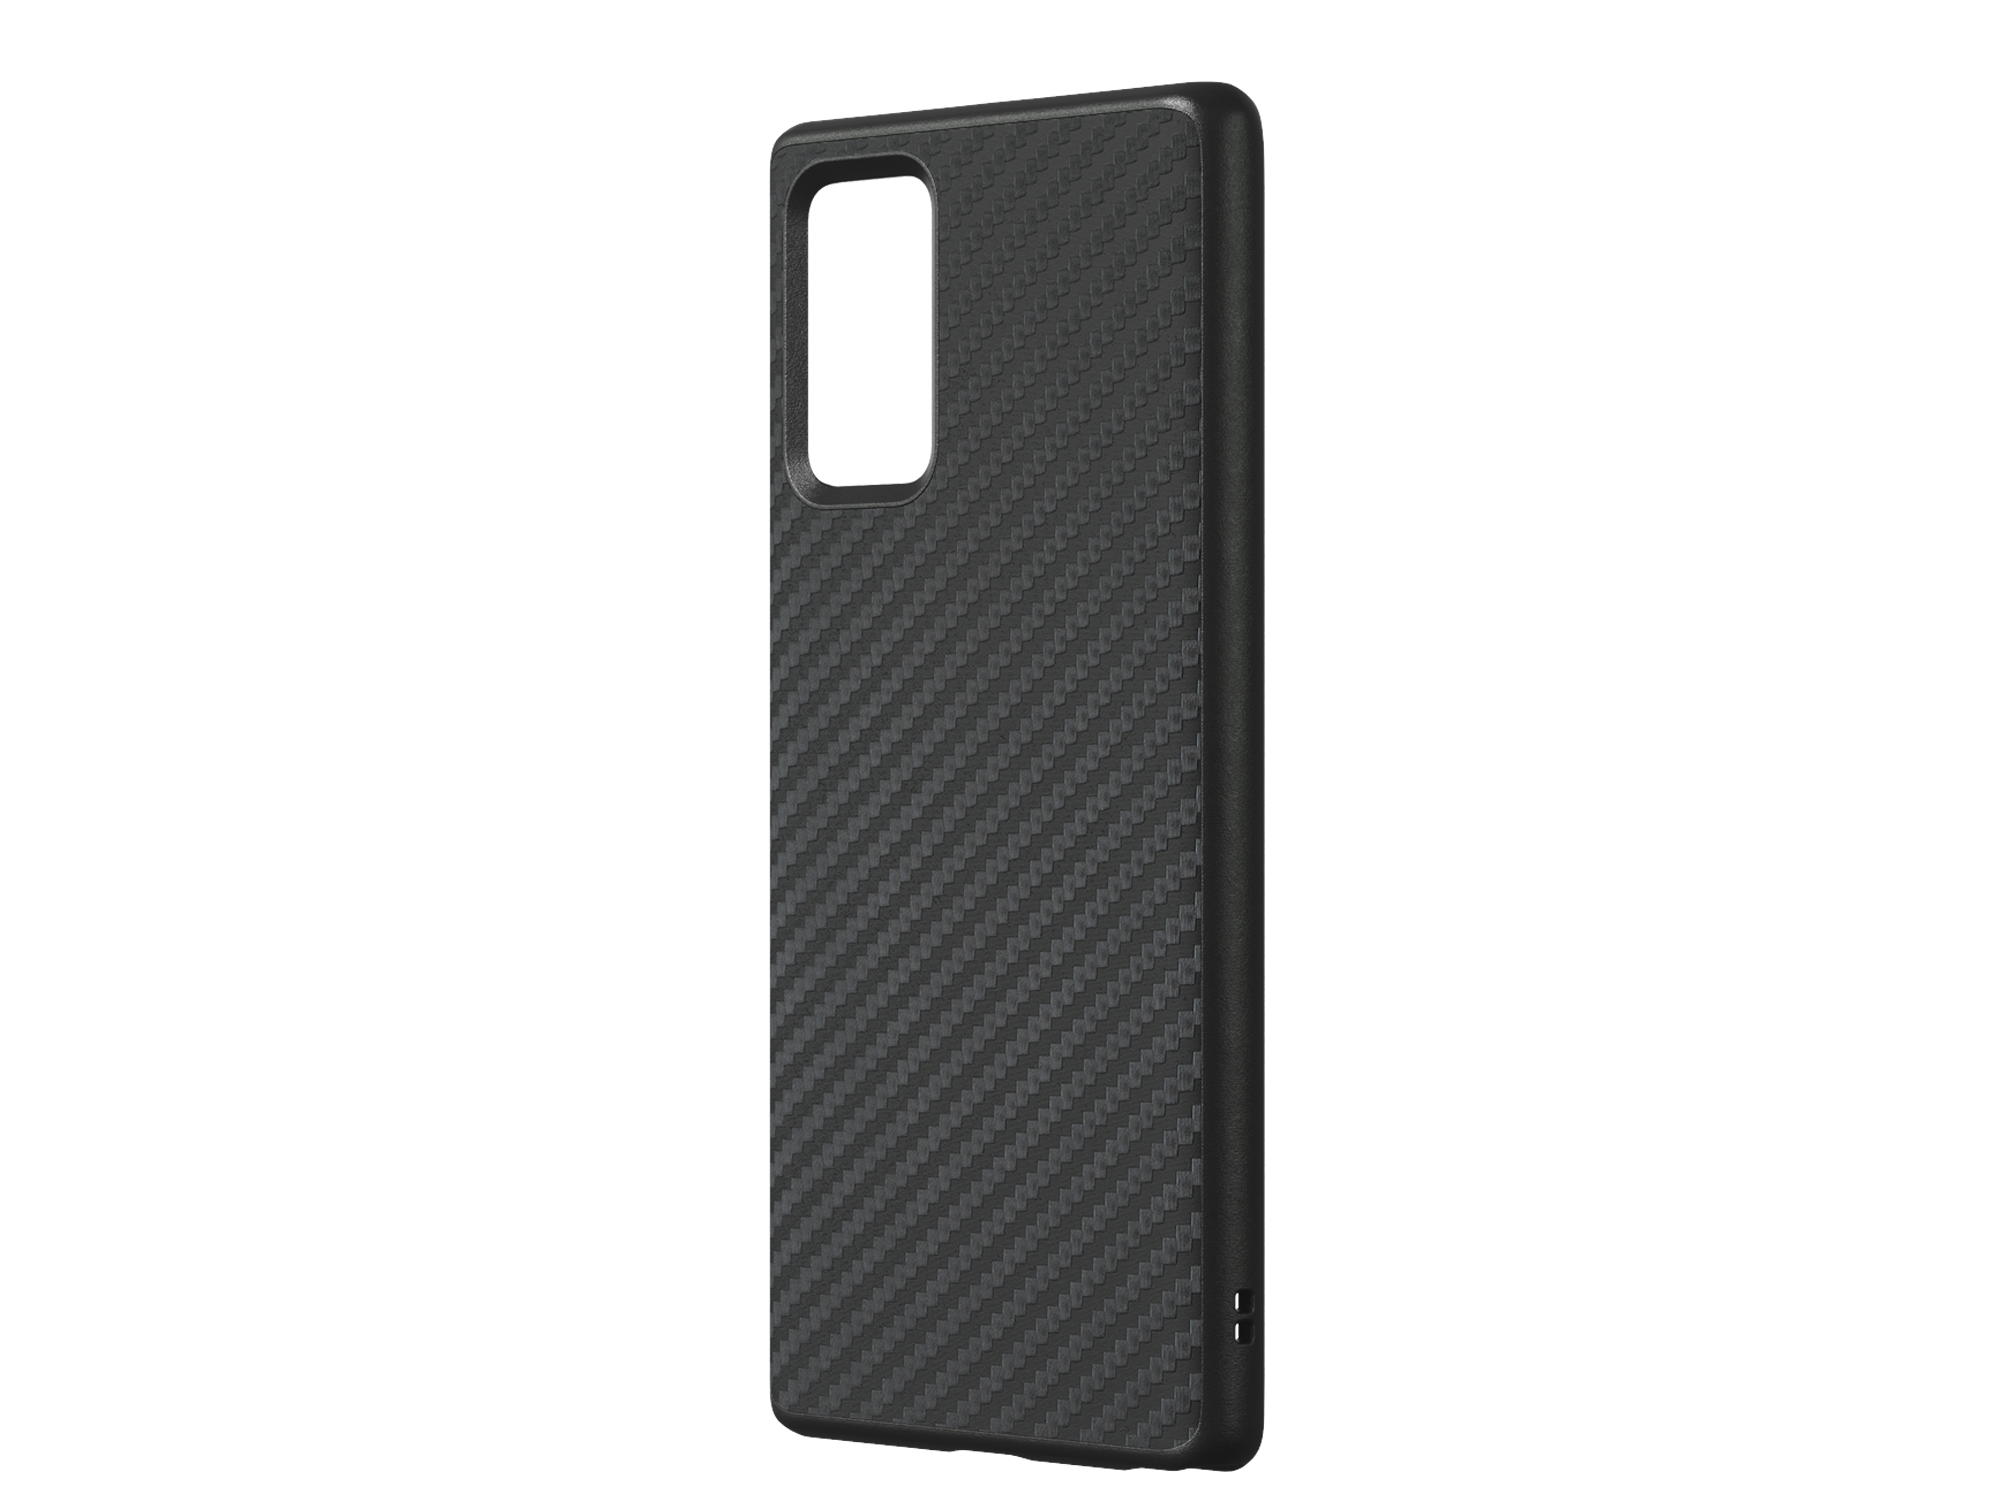 RhinoShield SolidSuit for Samsung Galaxy Note 20